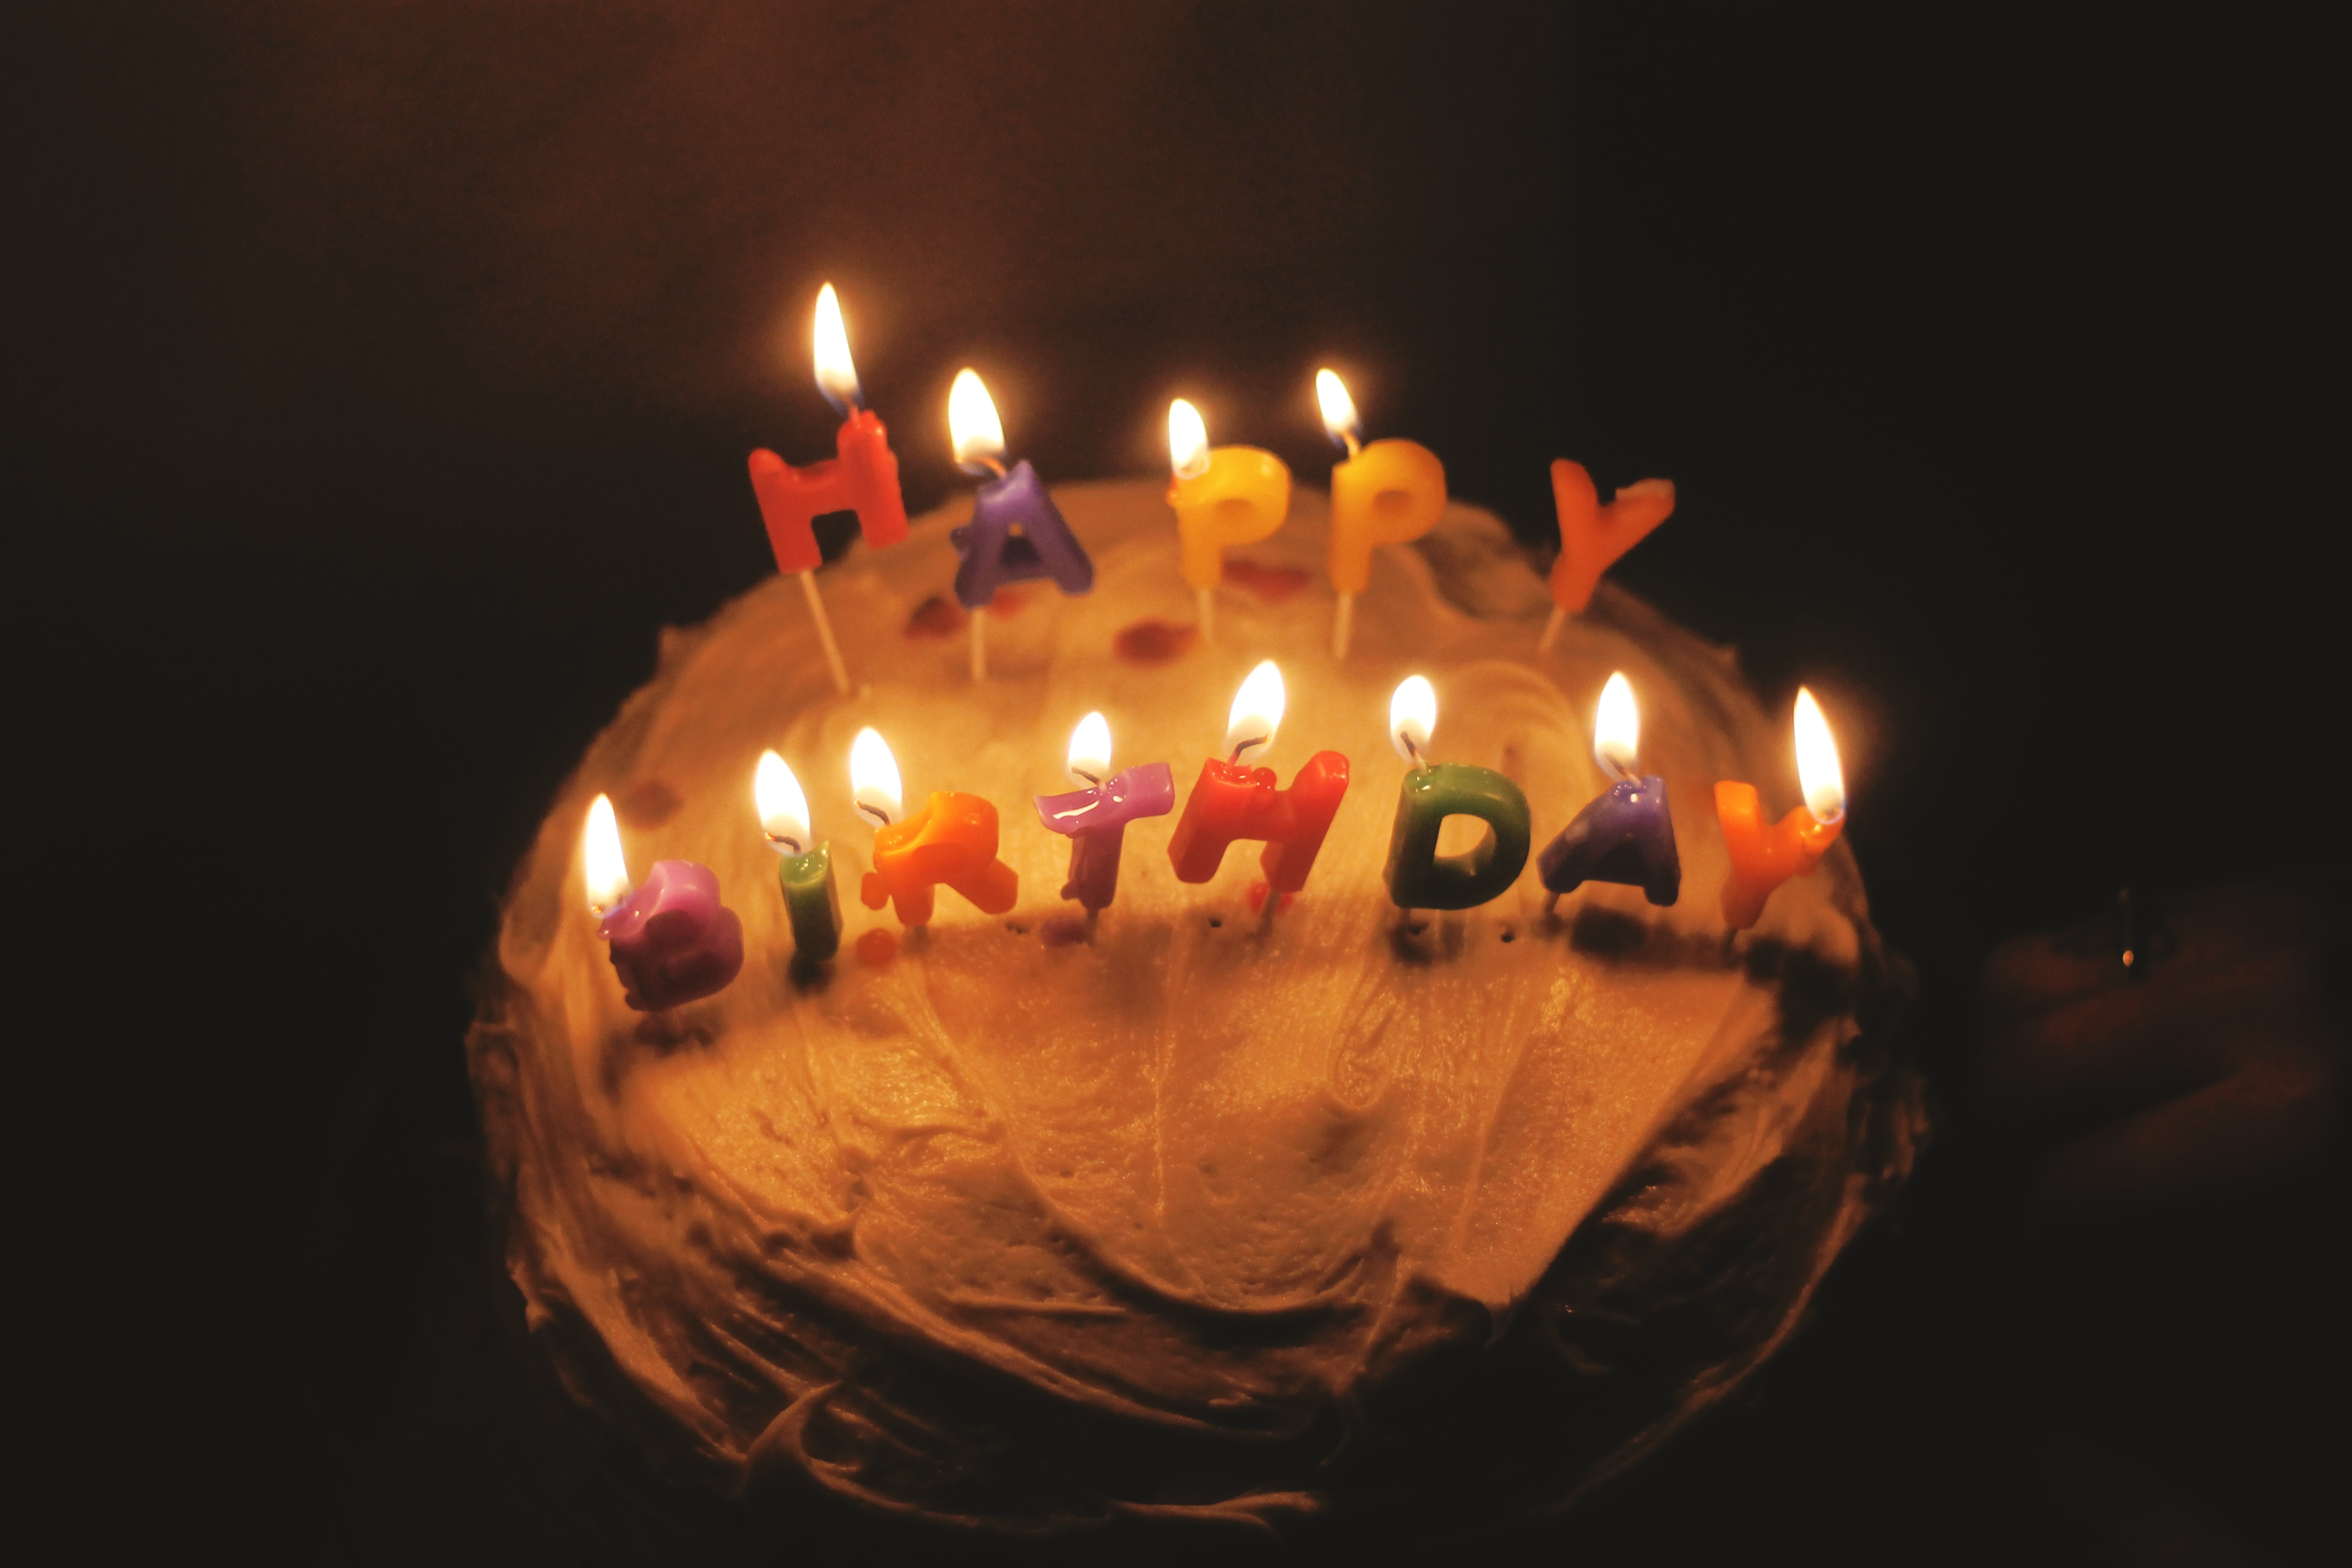 A birthday cake with frosting and happy birthday candles burning in a dark room